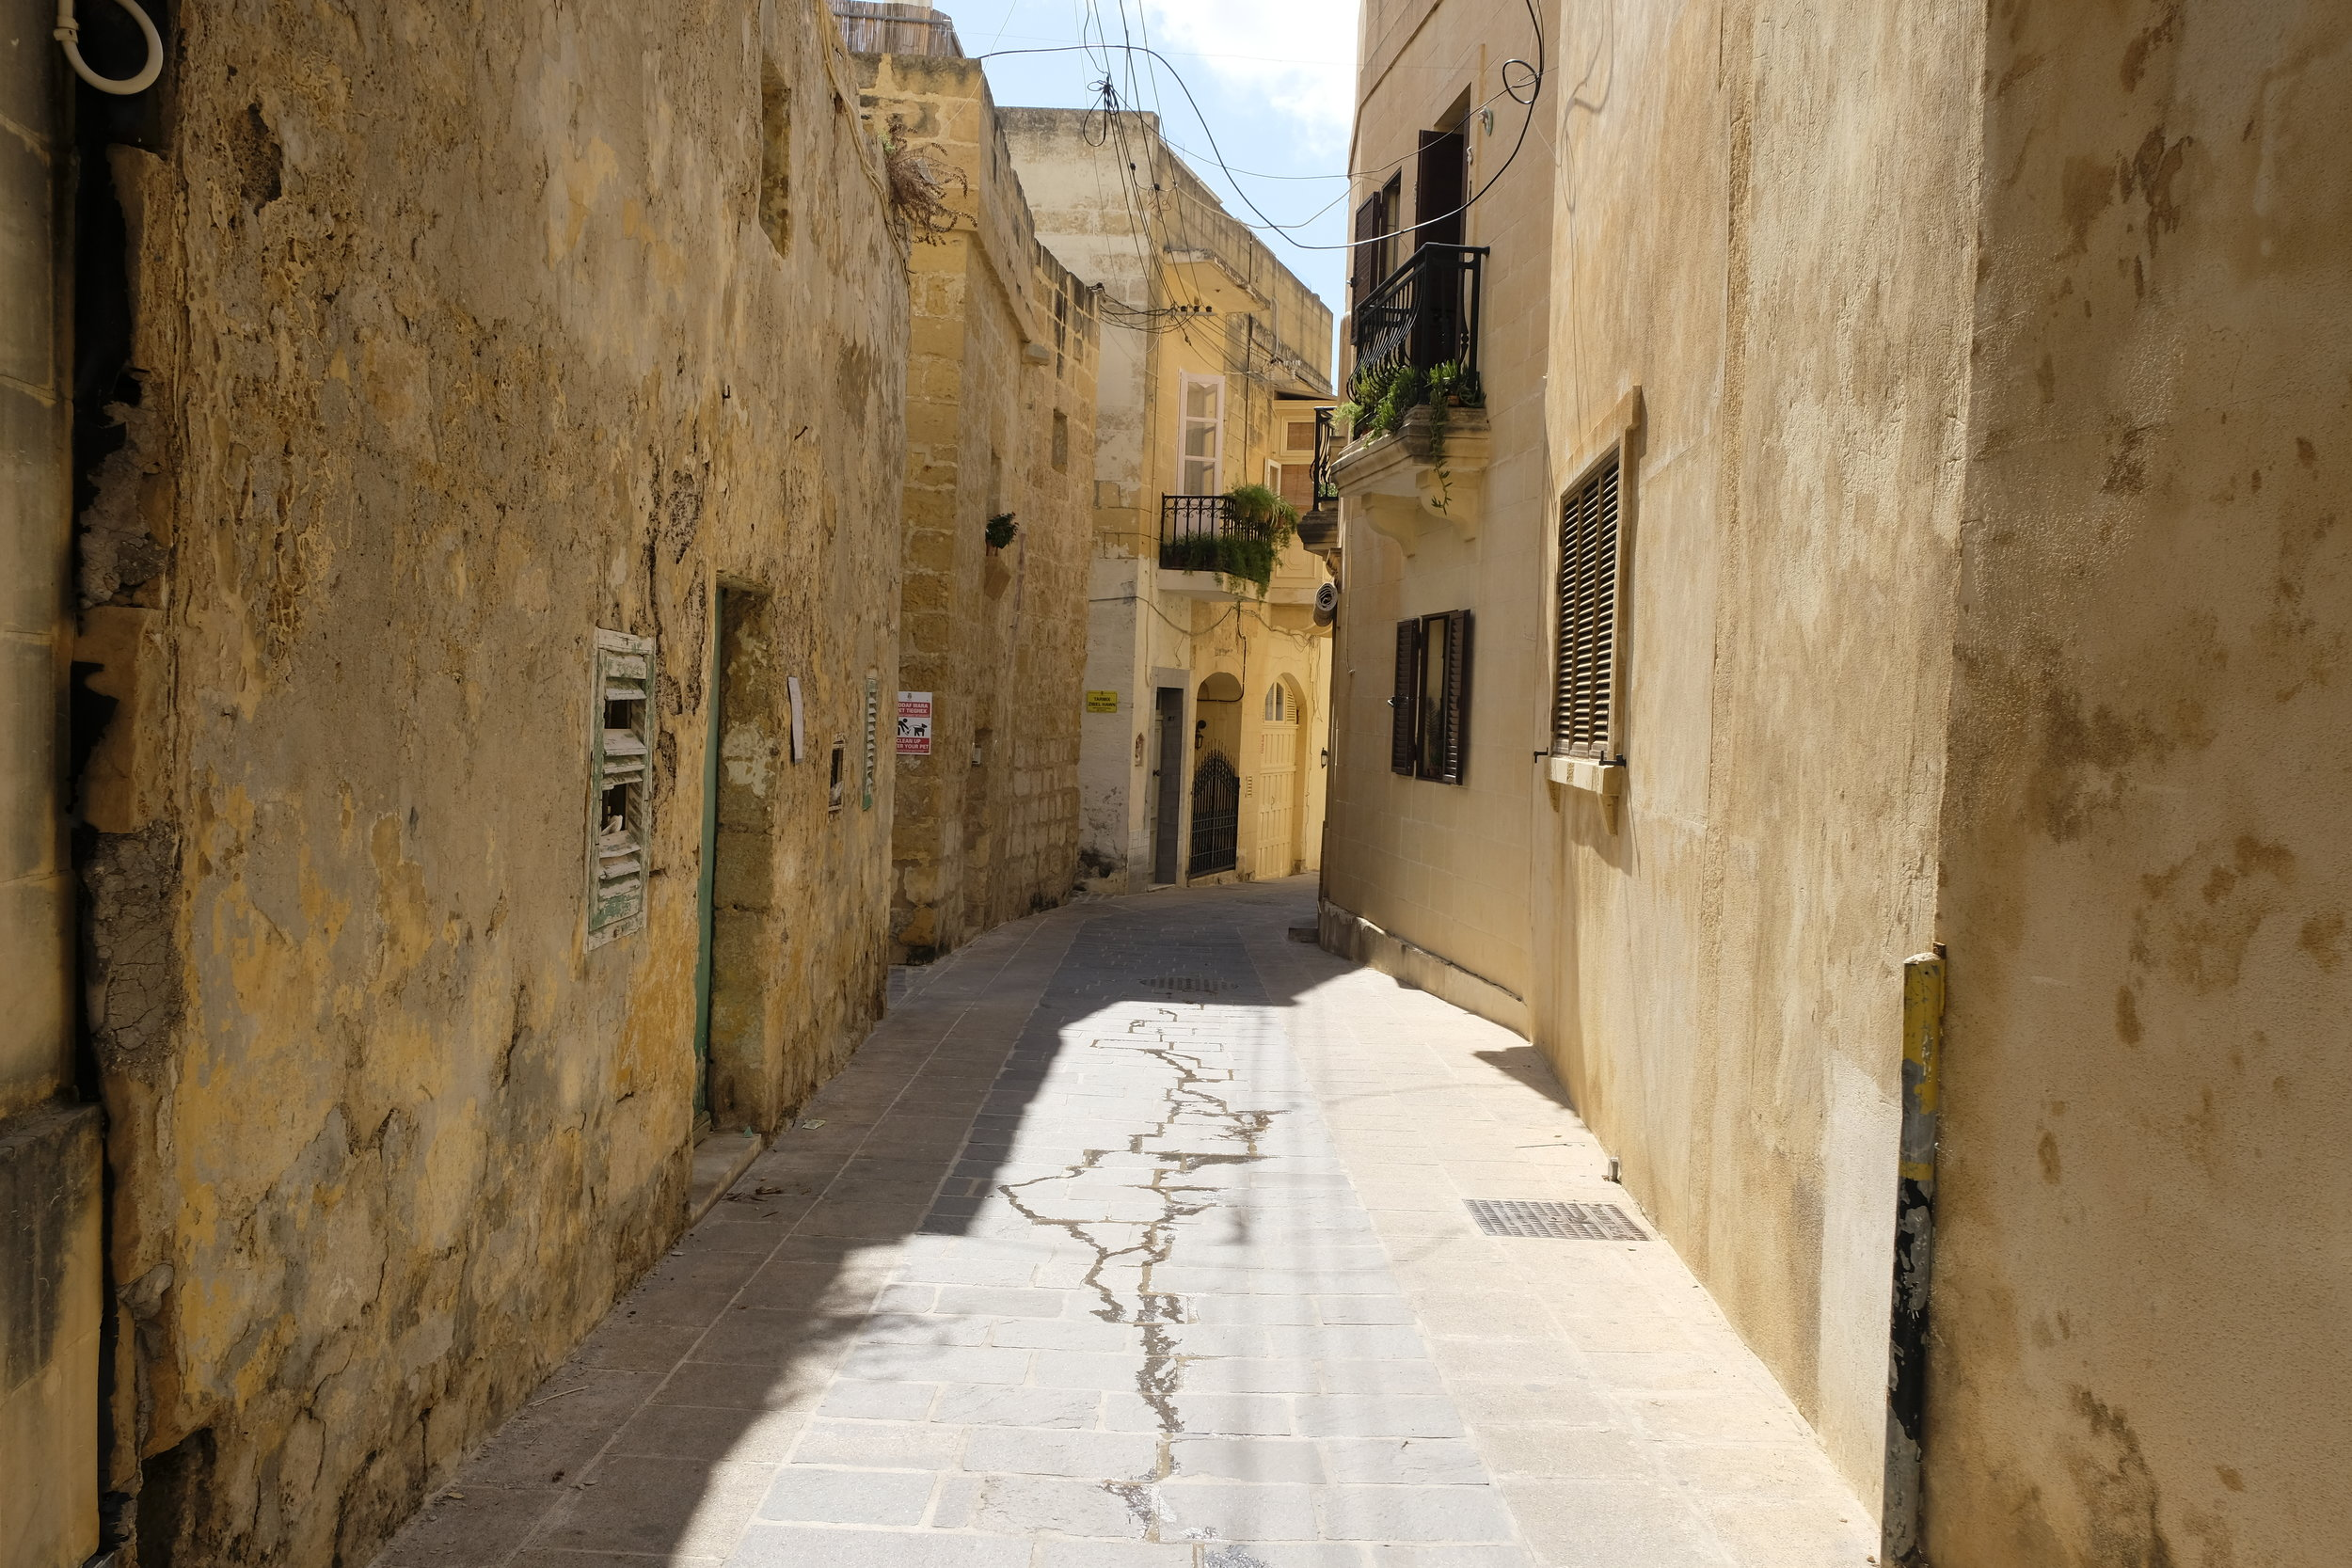 Many of these streets are narrow, with some houses renovated, others in slight disrepair